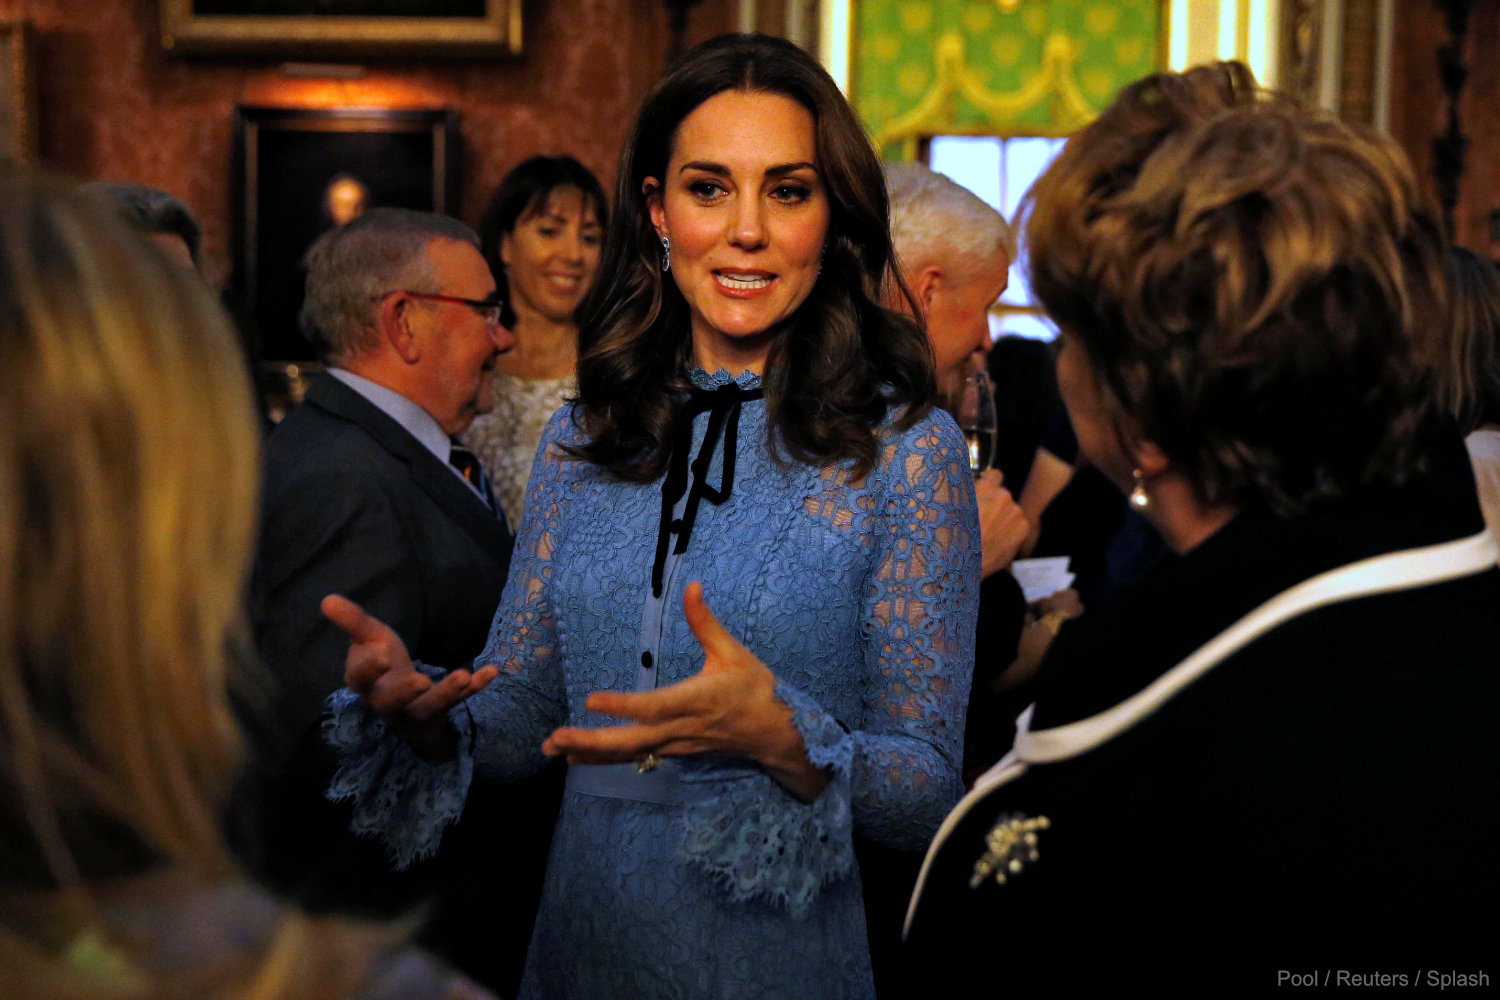 Kate Middleton attending the World Mental Health Day reception at Buckingham Palace